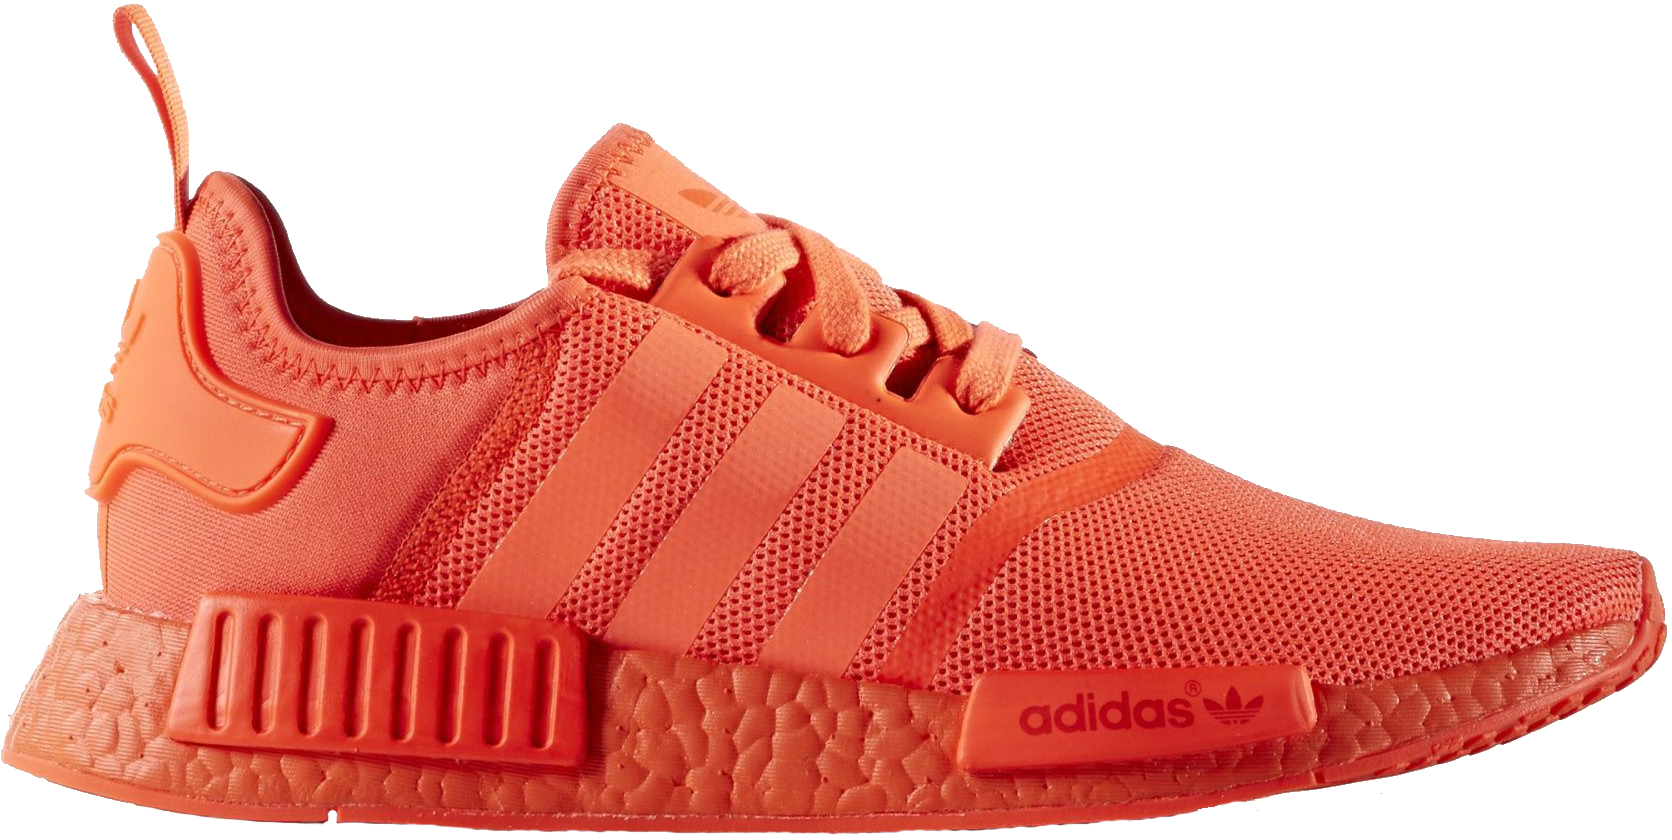 adidas NMD R1 Triple Solar Red